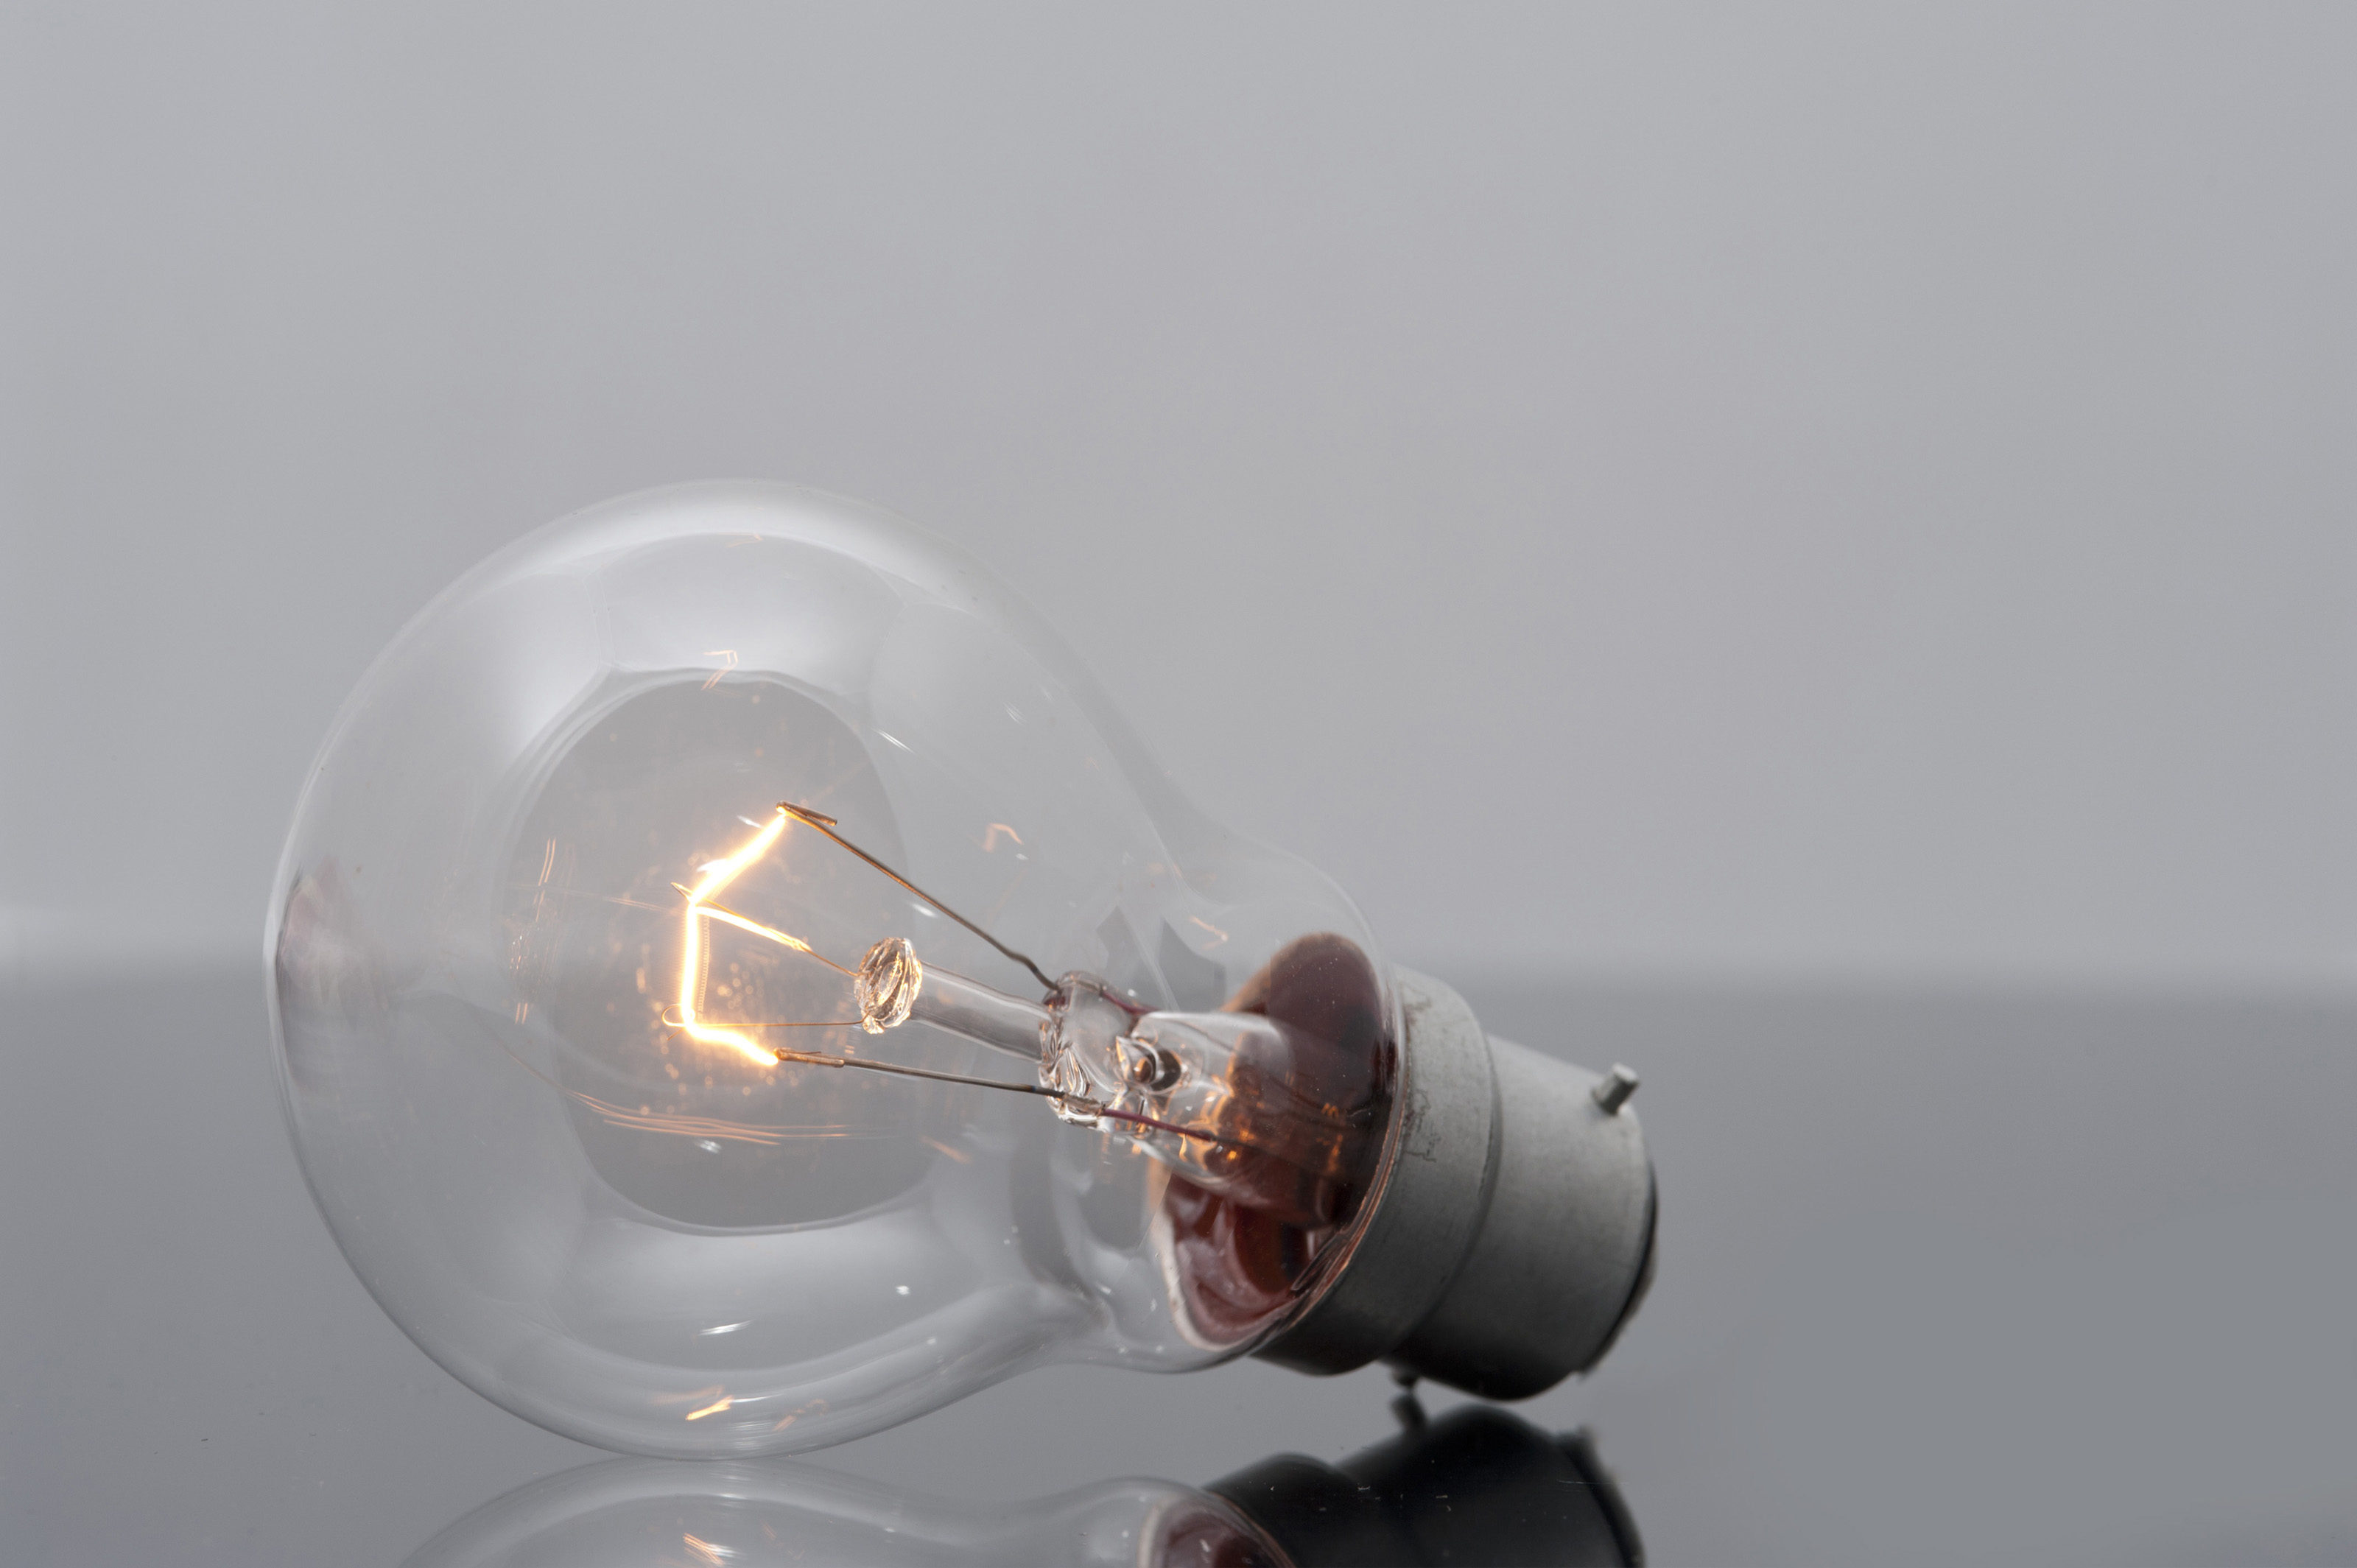 enjoyed do i to home suggestions at immensely light t you wires anyone stripped projects and can cheap of great it was have as bulbs aren if afraid this huflon burning say photography fun